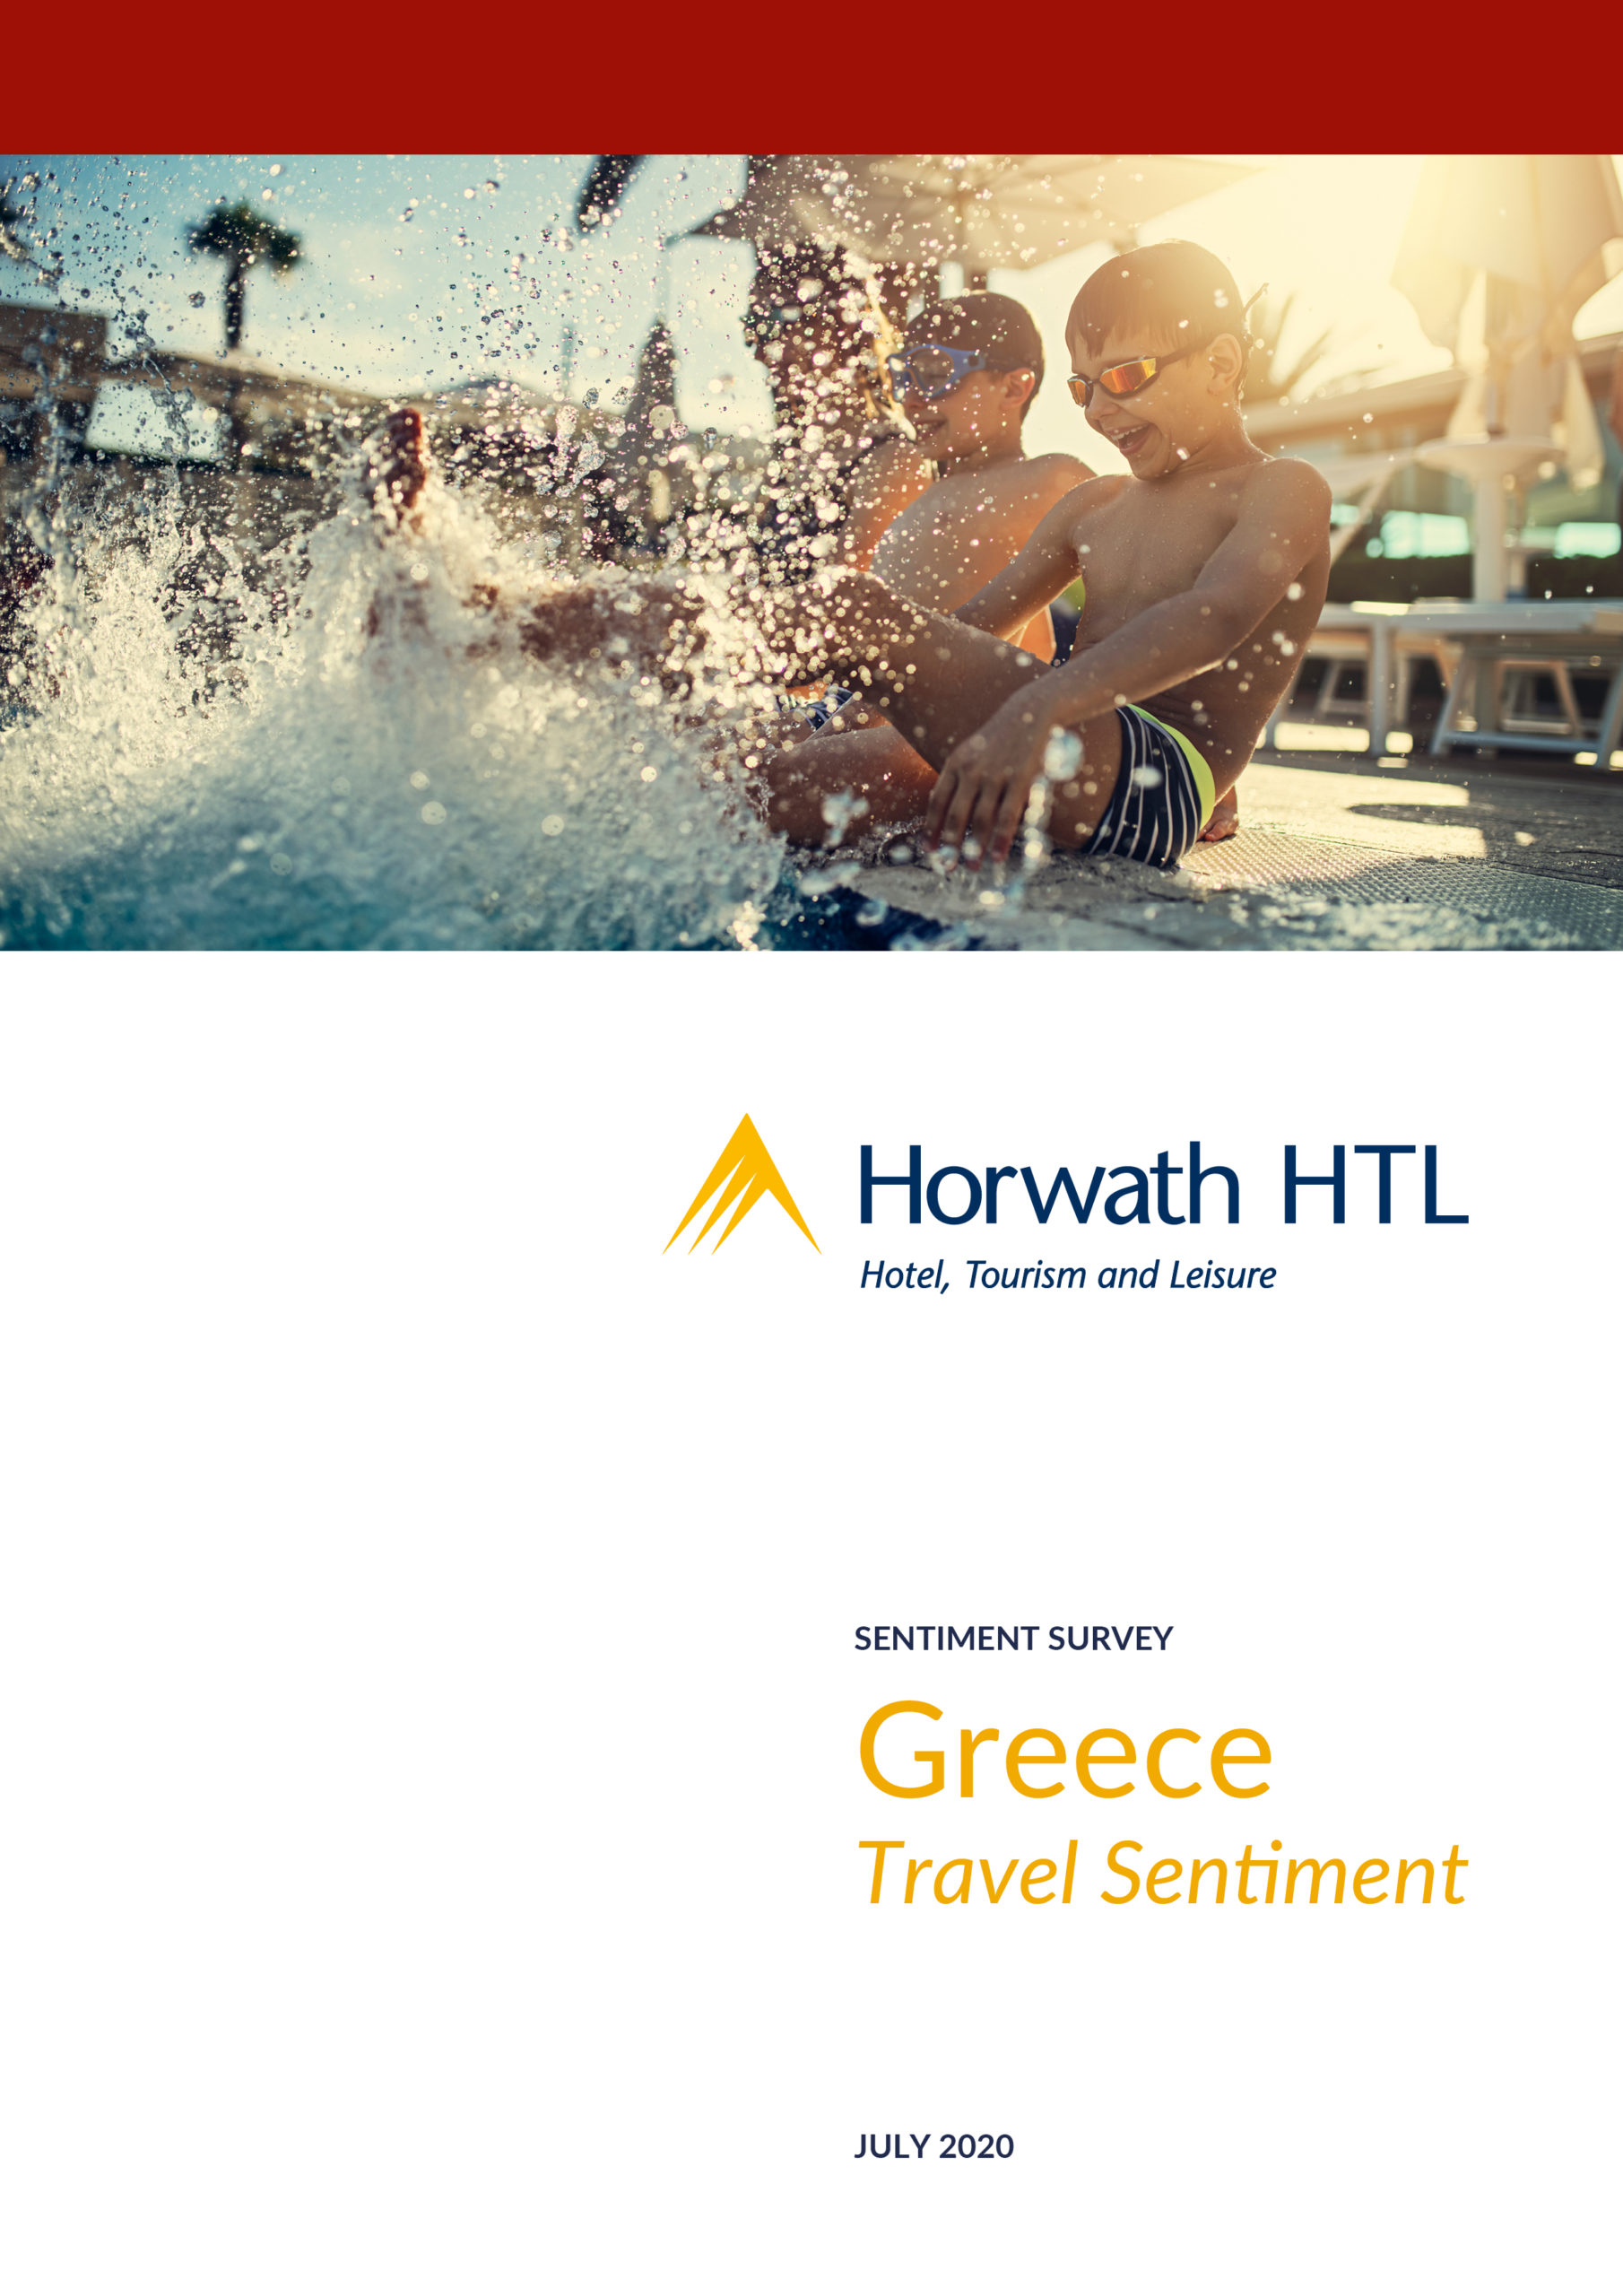 Greece Travel Sentiment Survey scaled 1